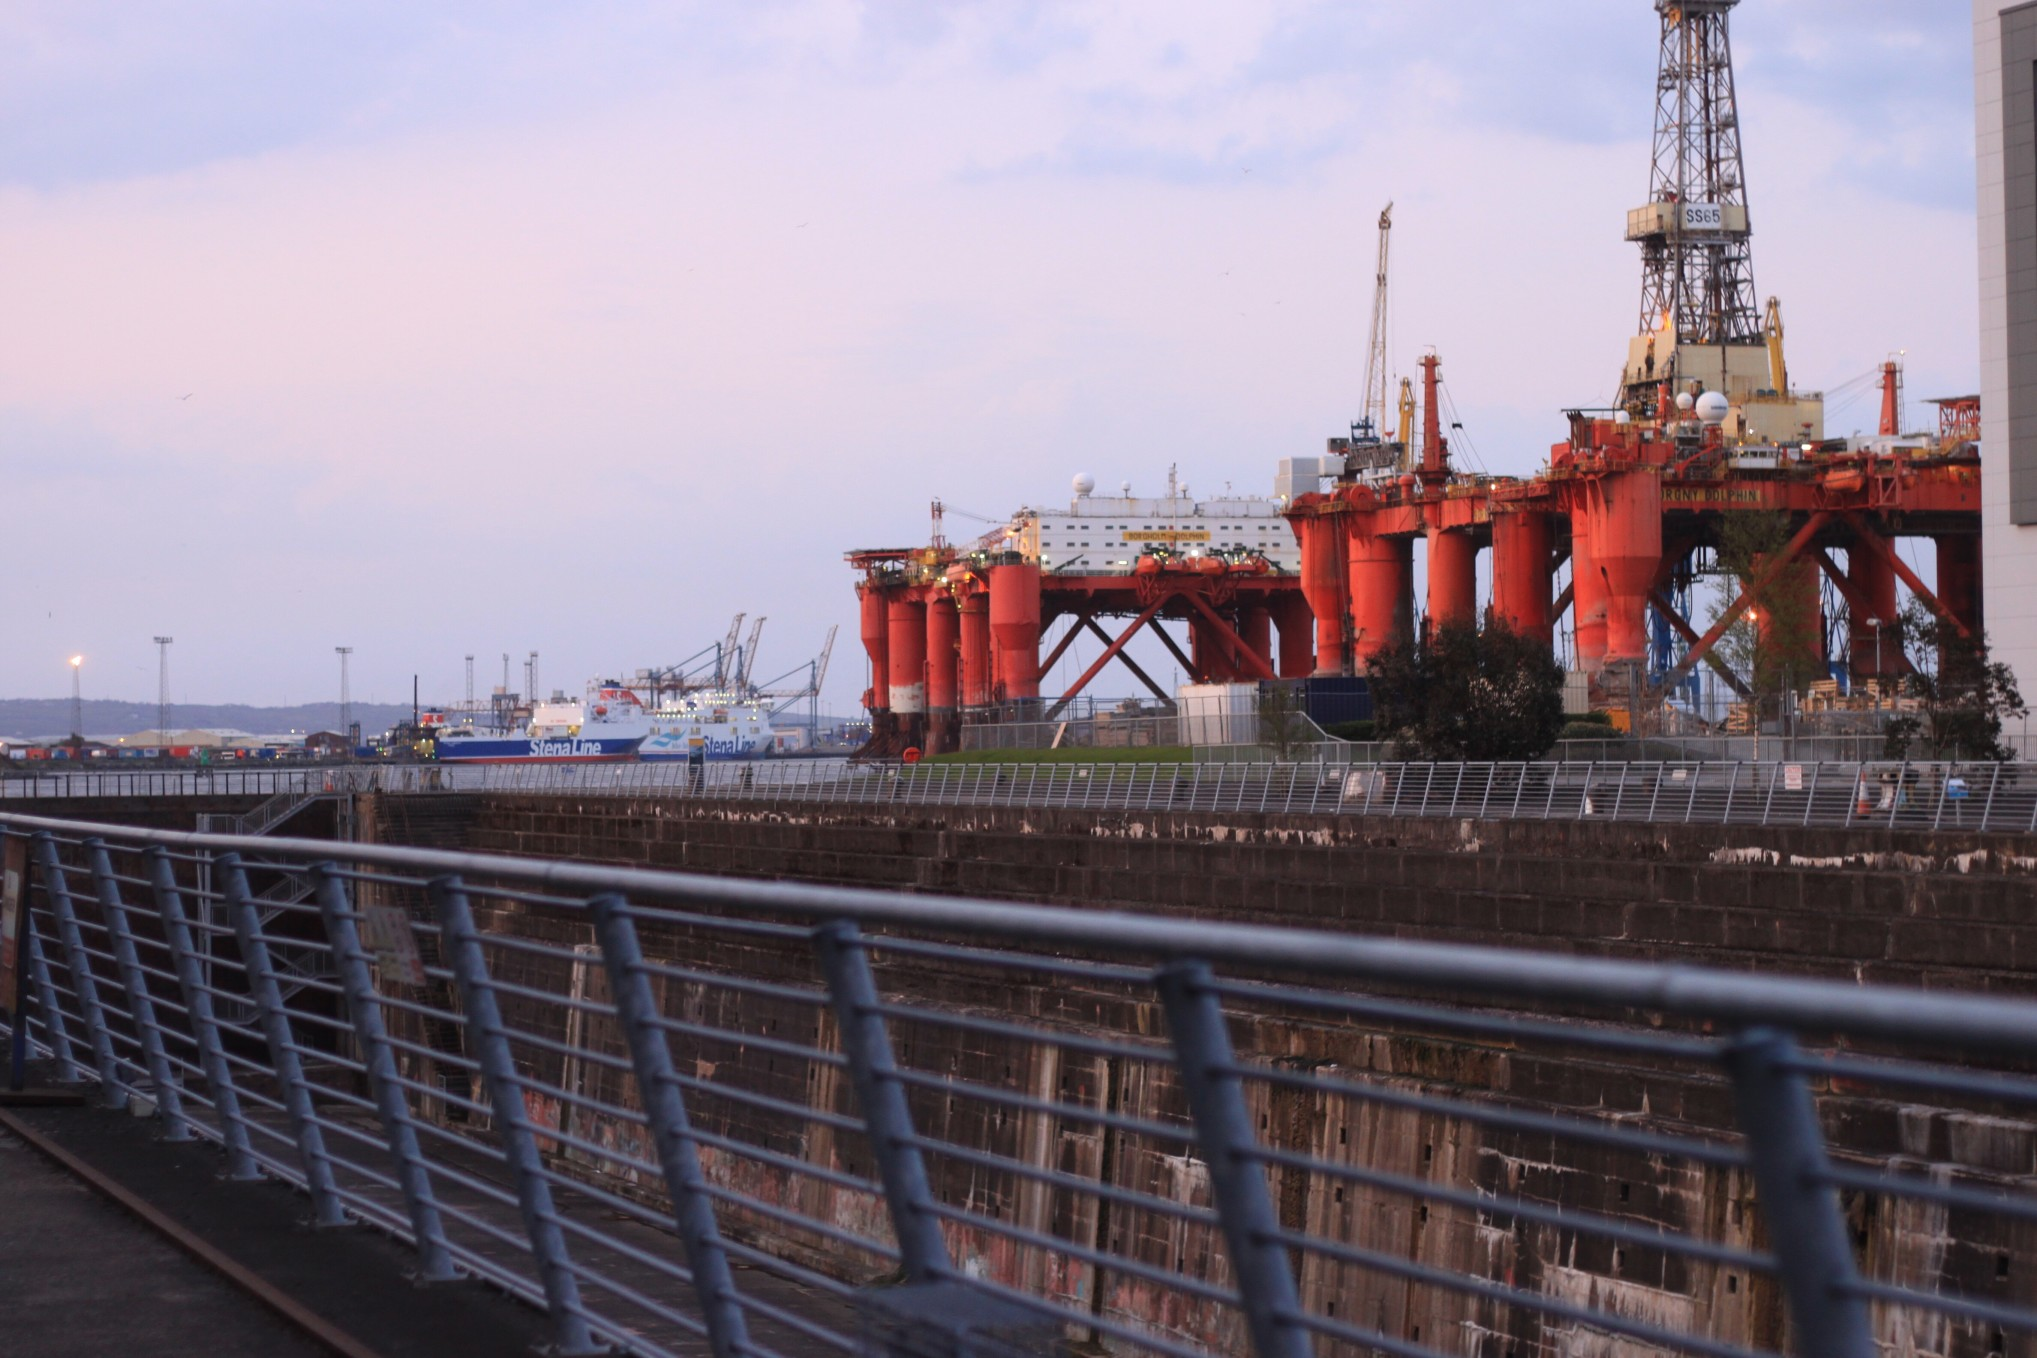 Belfast Harbour We Build Some Of The Worlds Largest Structures Even If You Dont Agree With Mining T20 E8l9wm.jpg